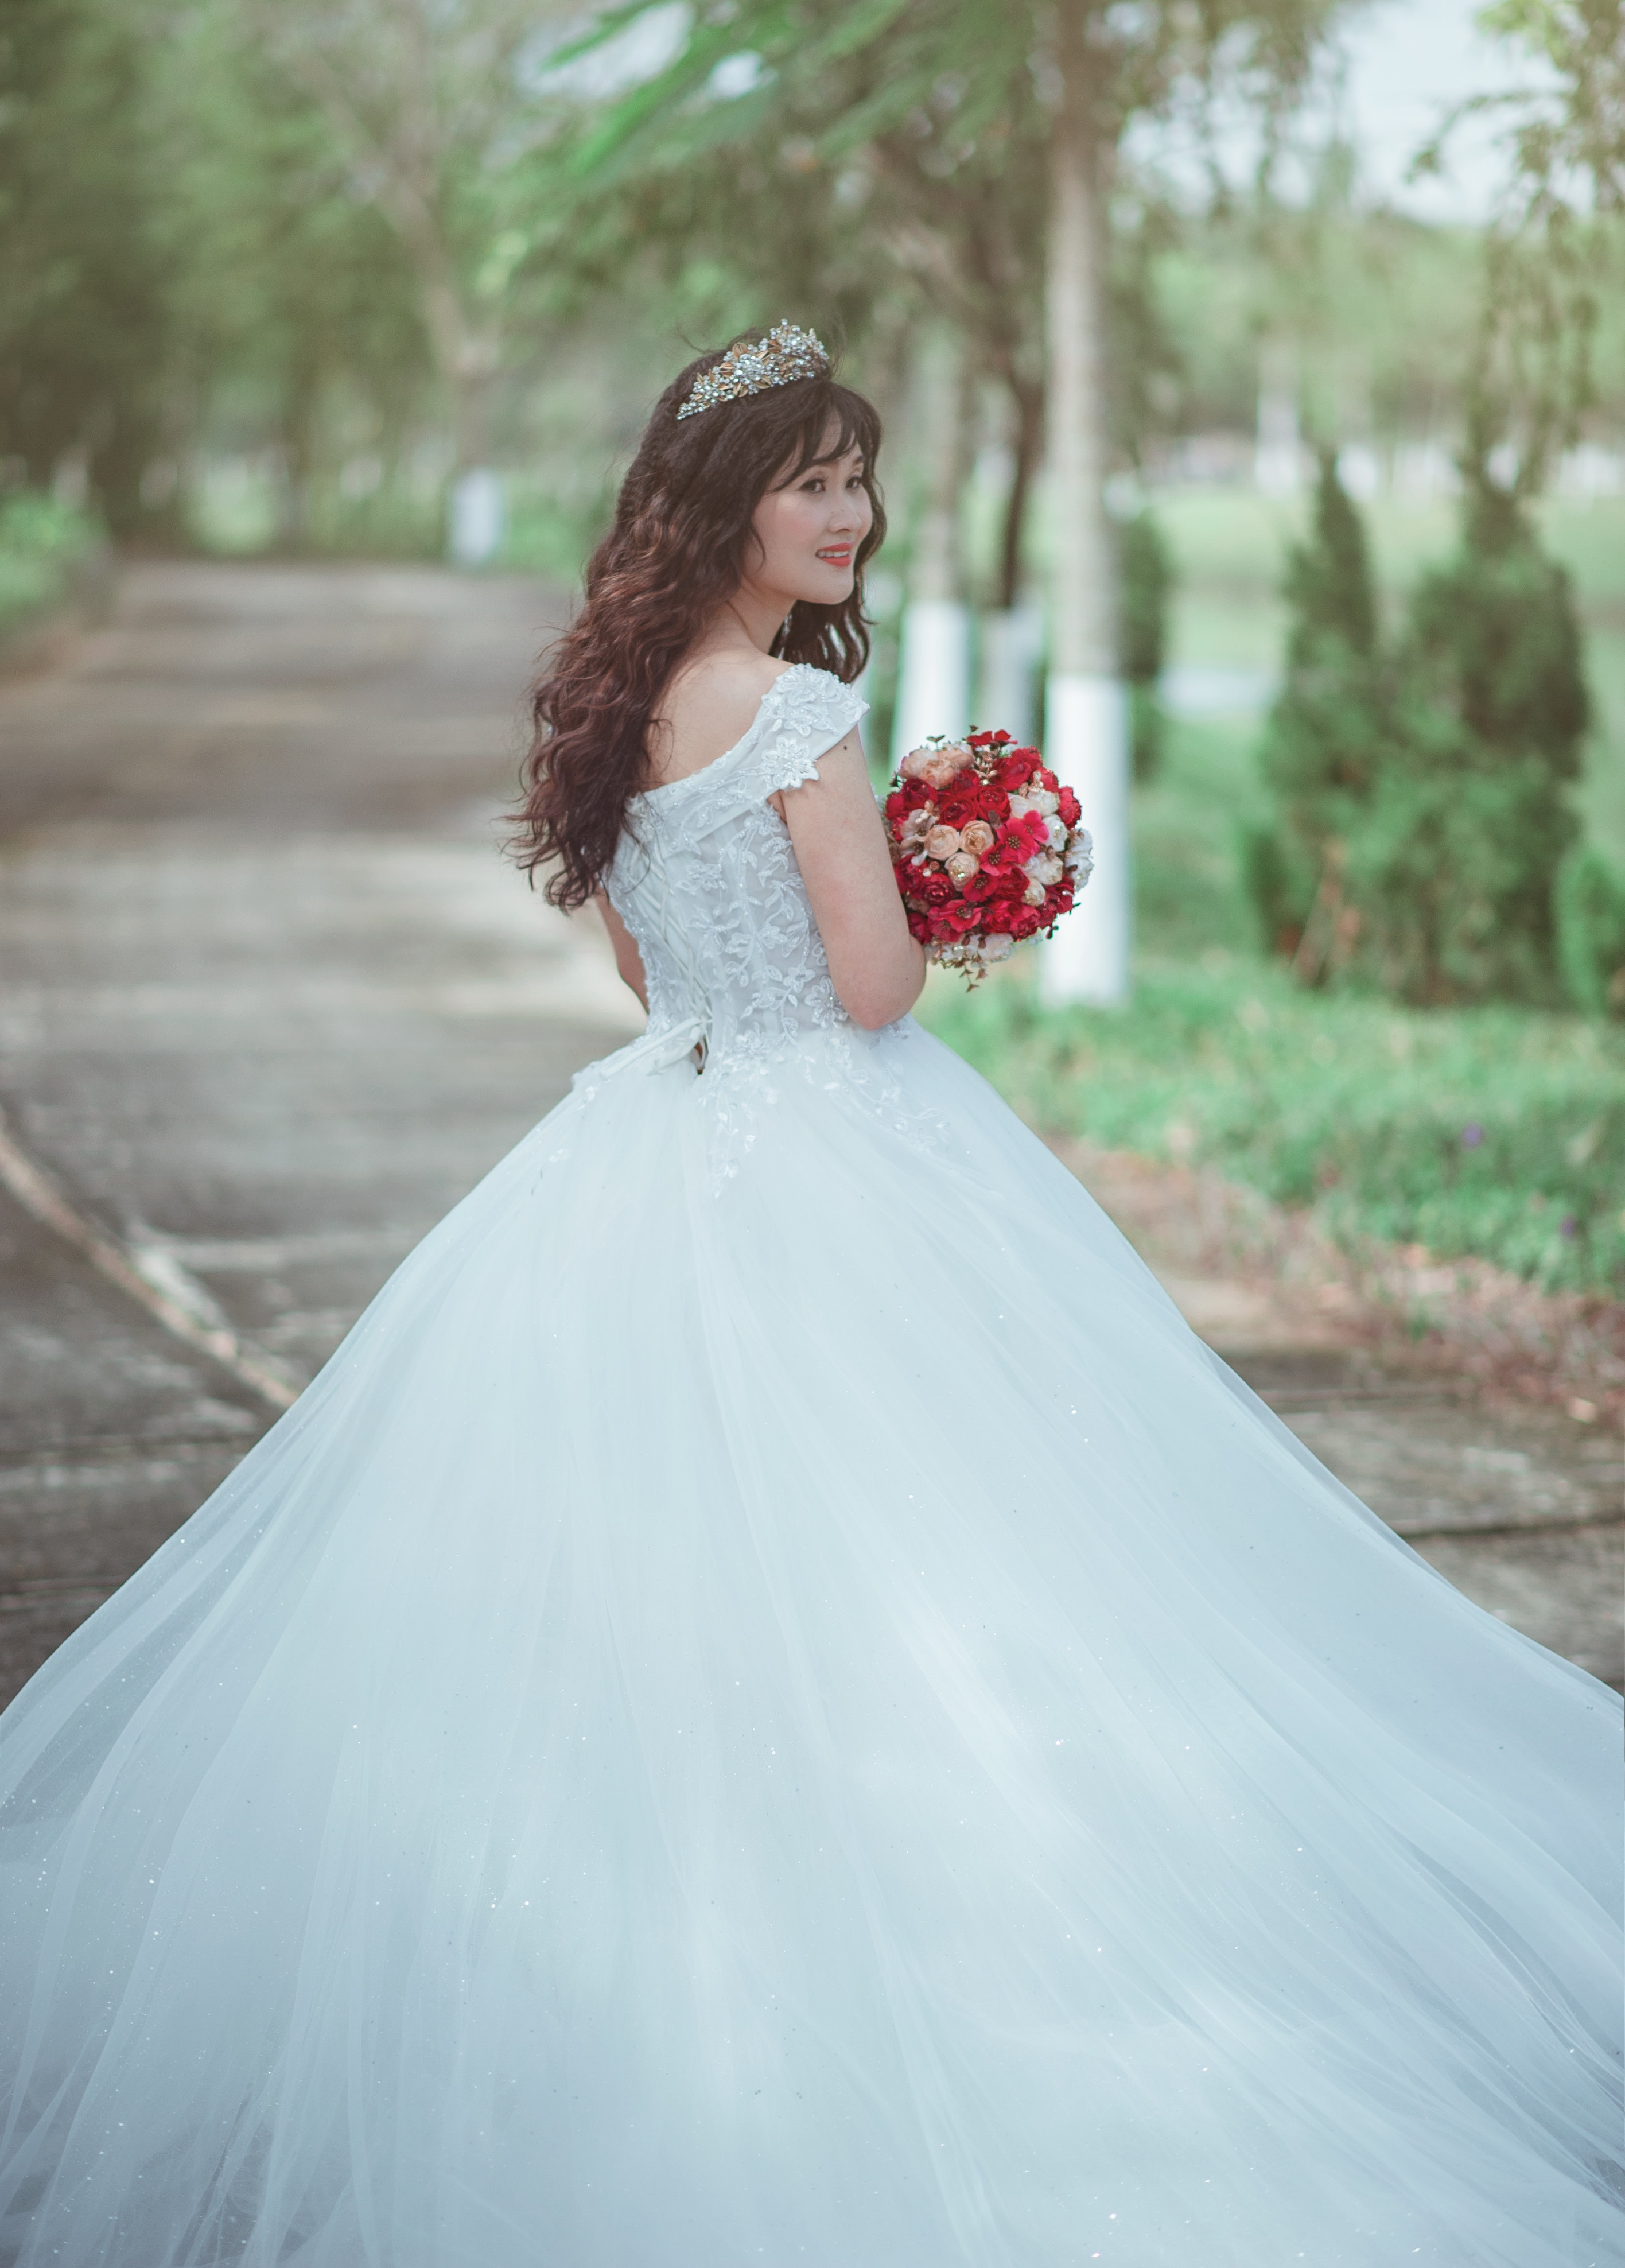 Free photo: Woman in White Wedding Dress Holding Red Bouquet ...